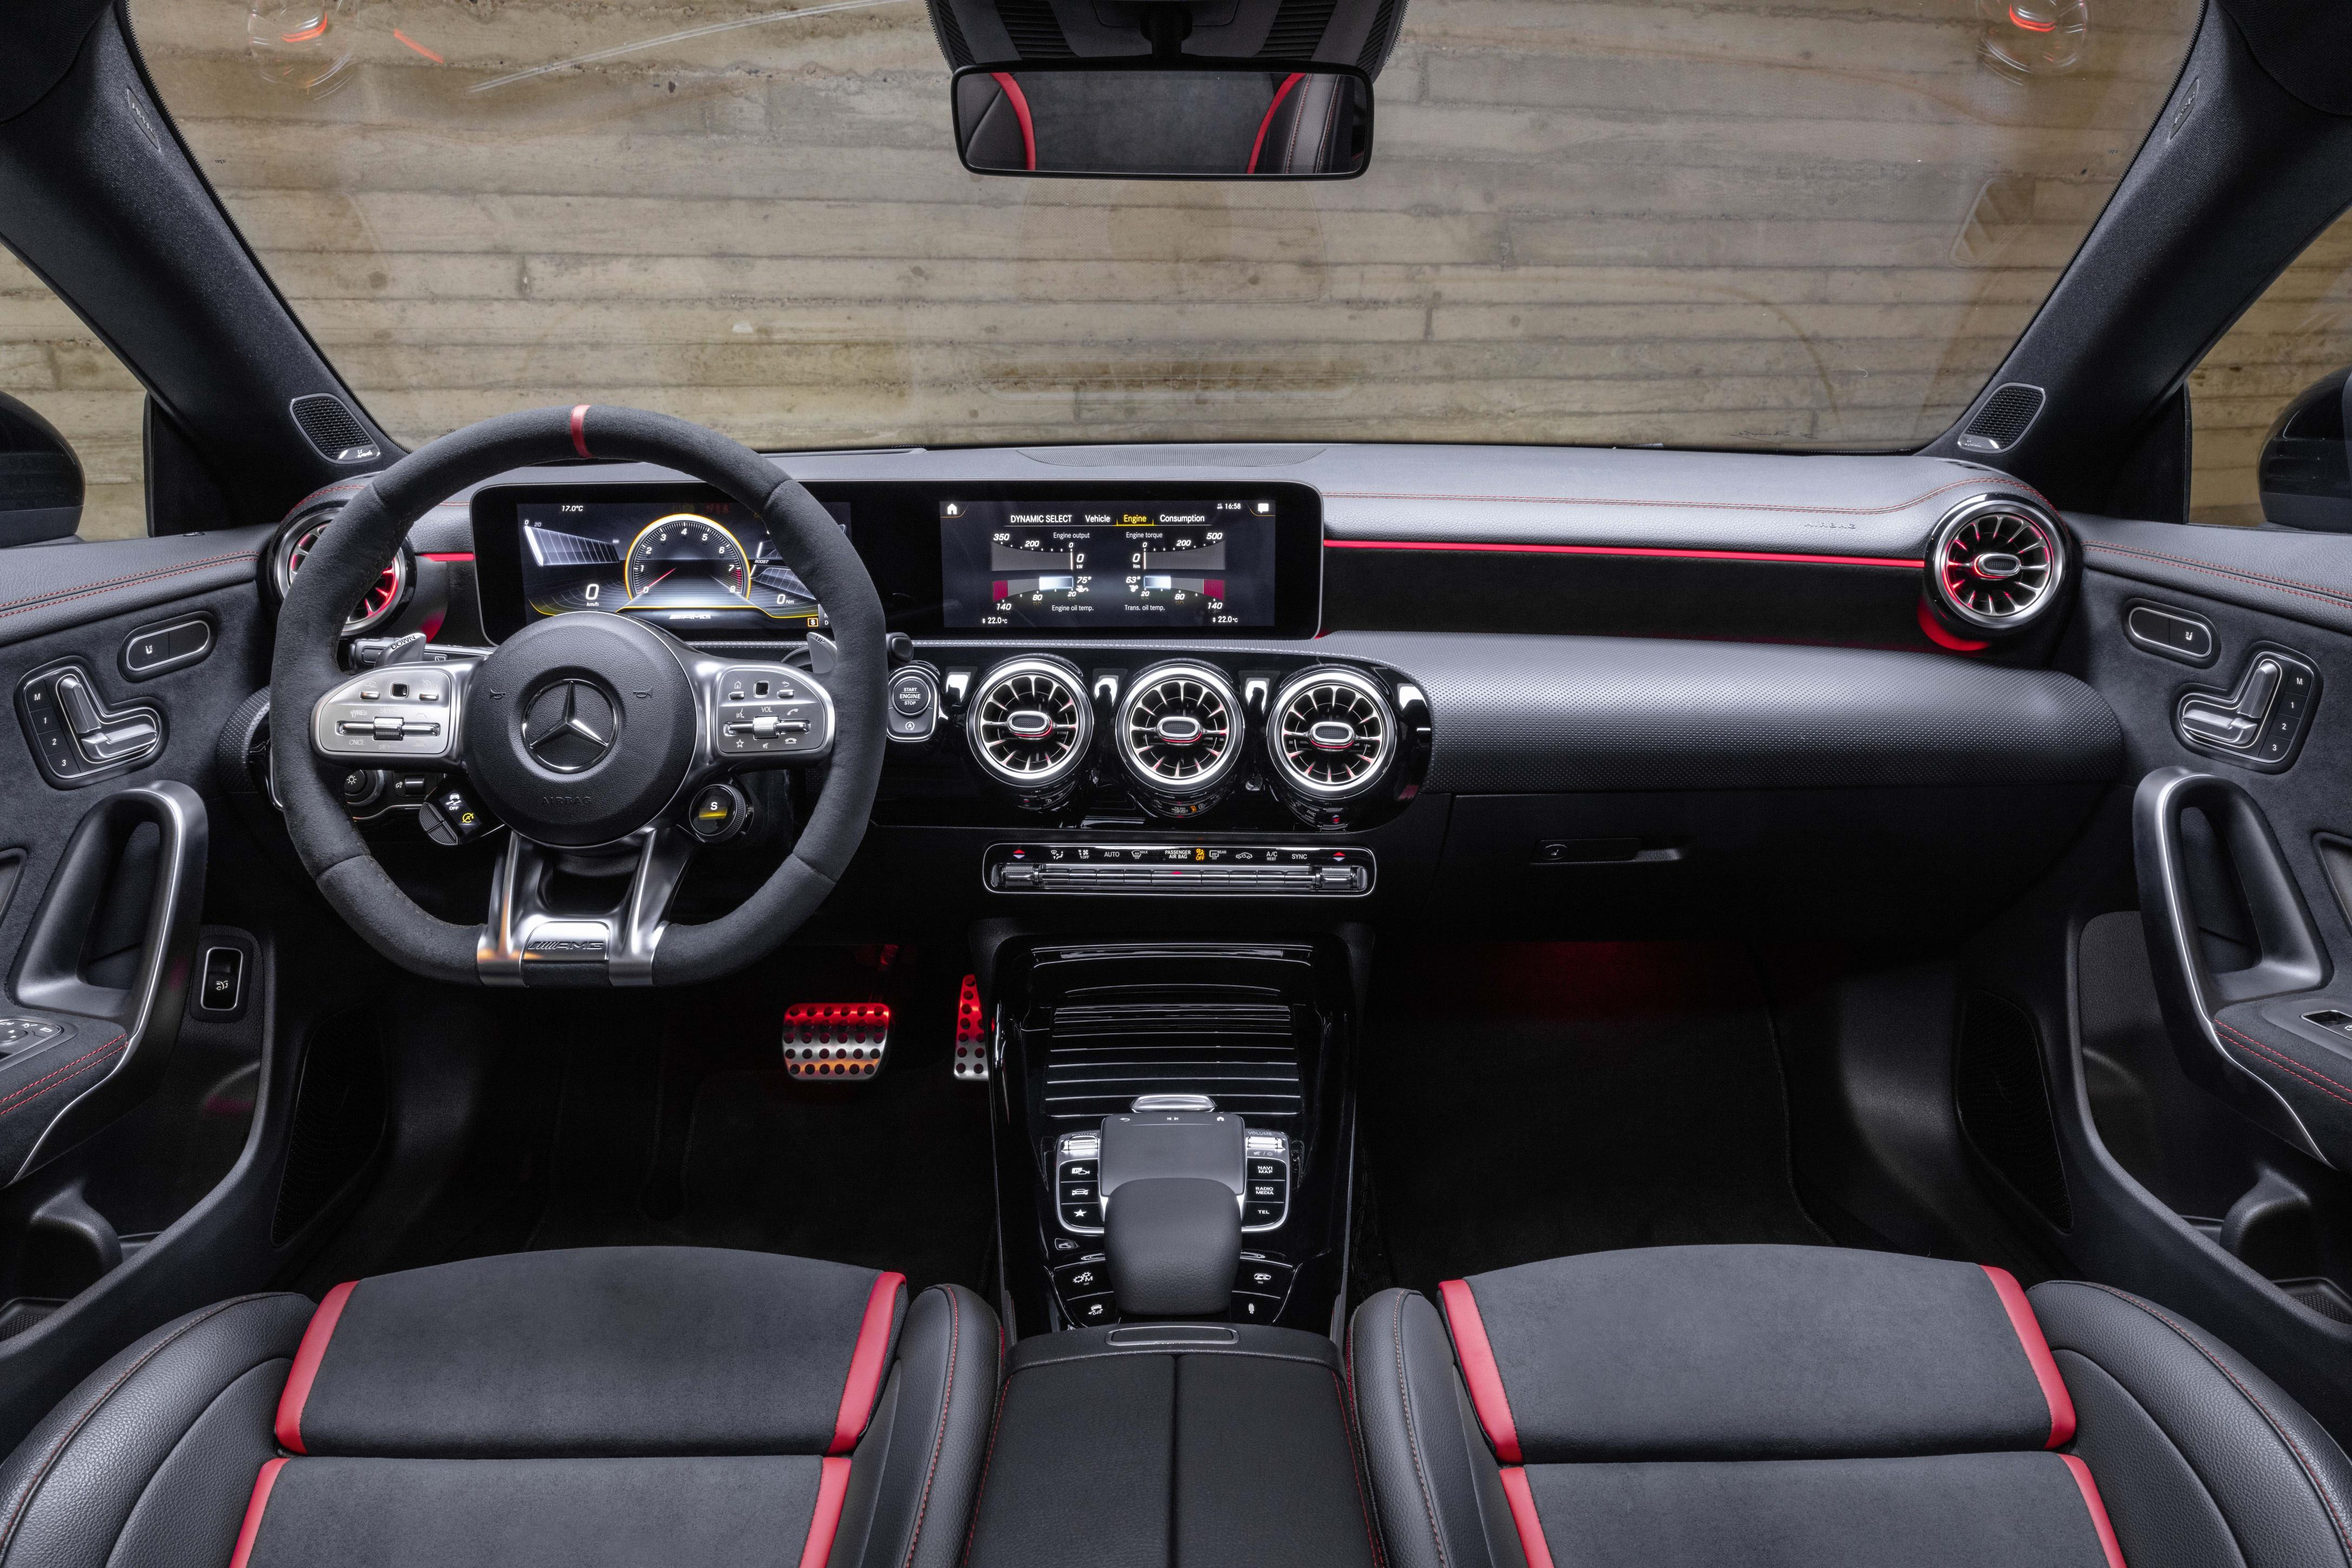 The interior of the CLA features sports seats and a matching steering wheel